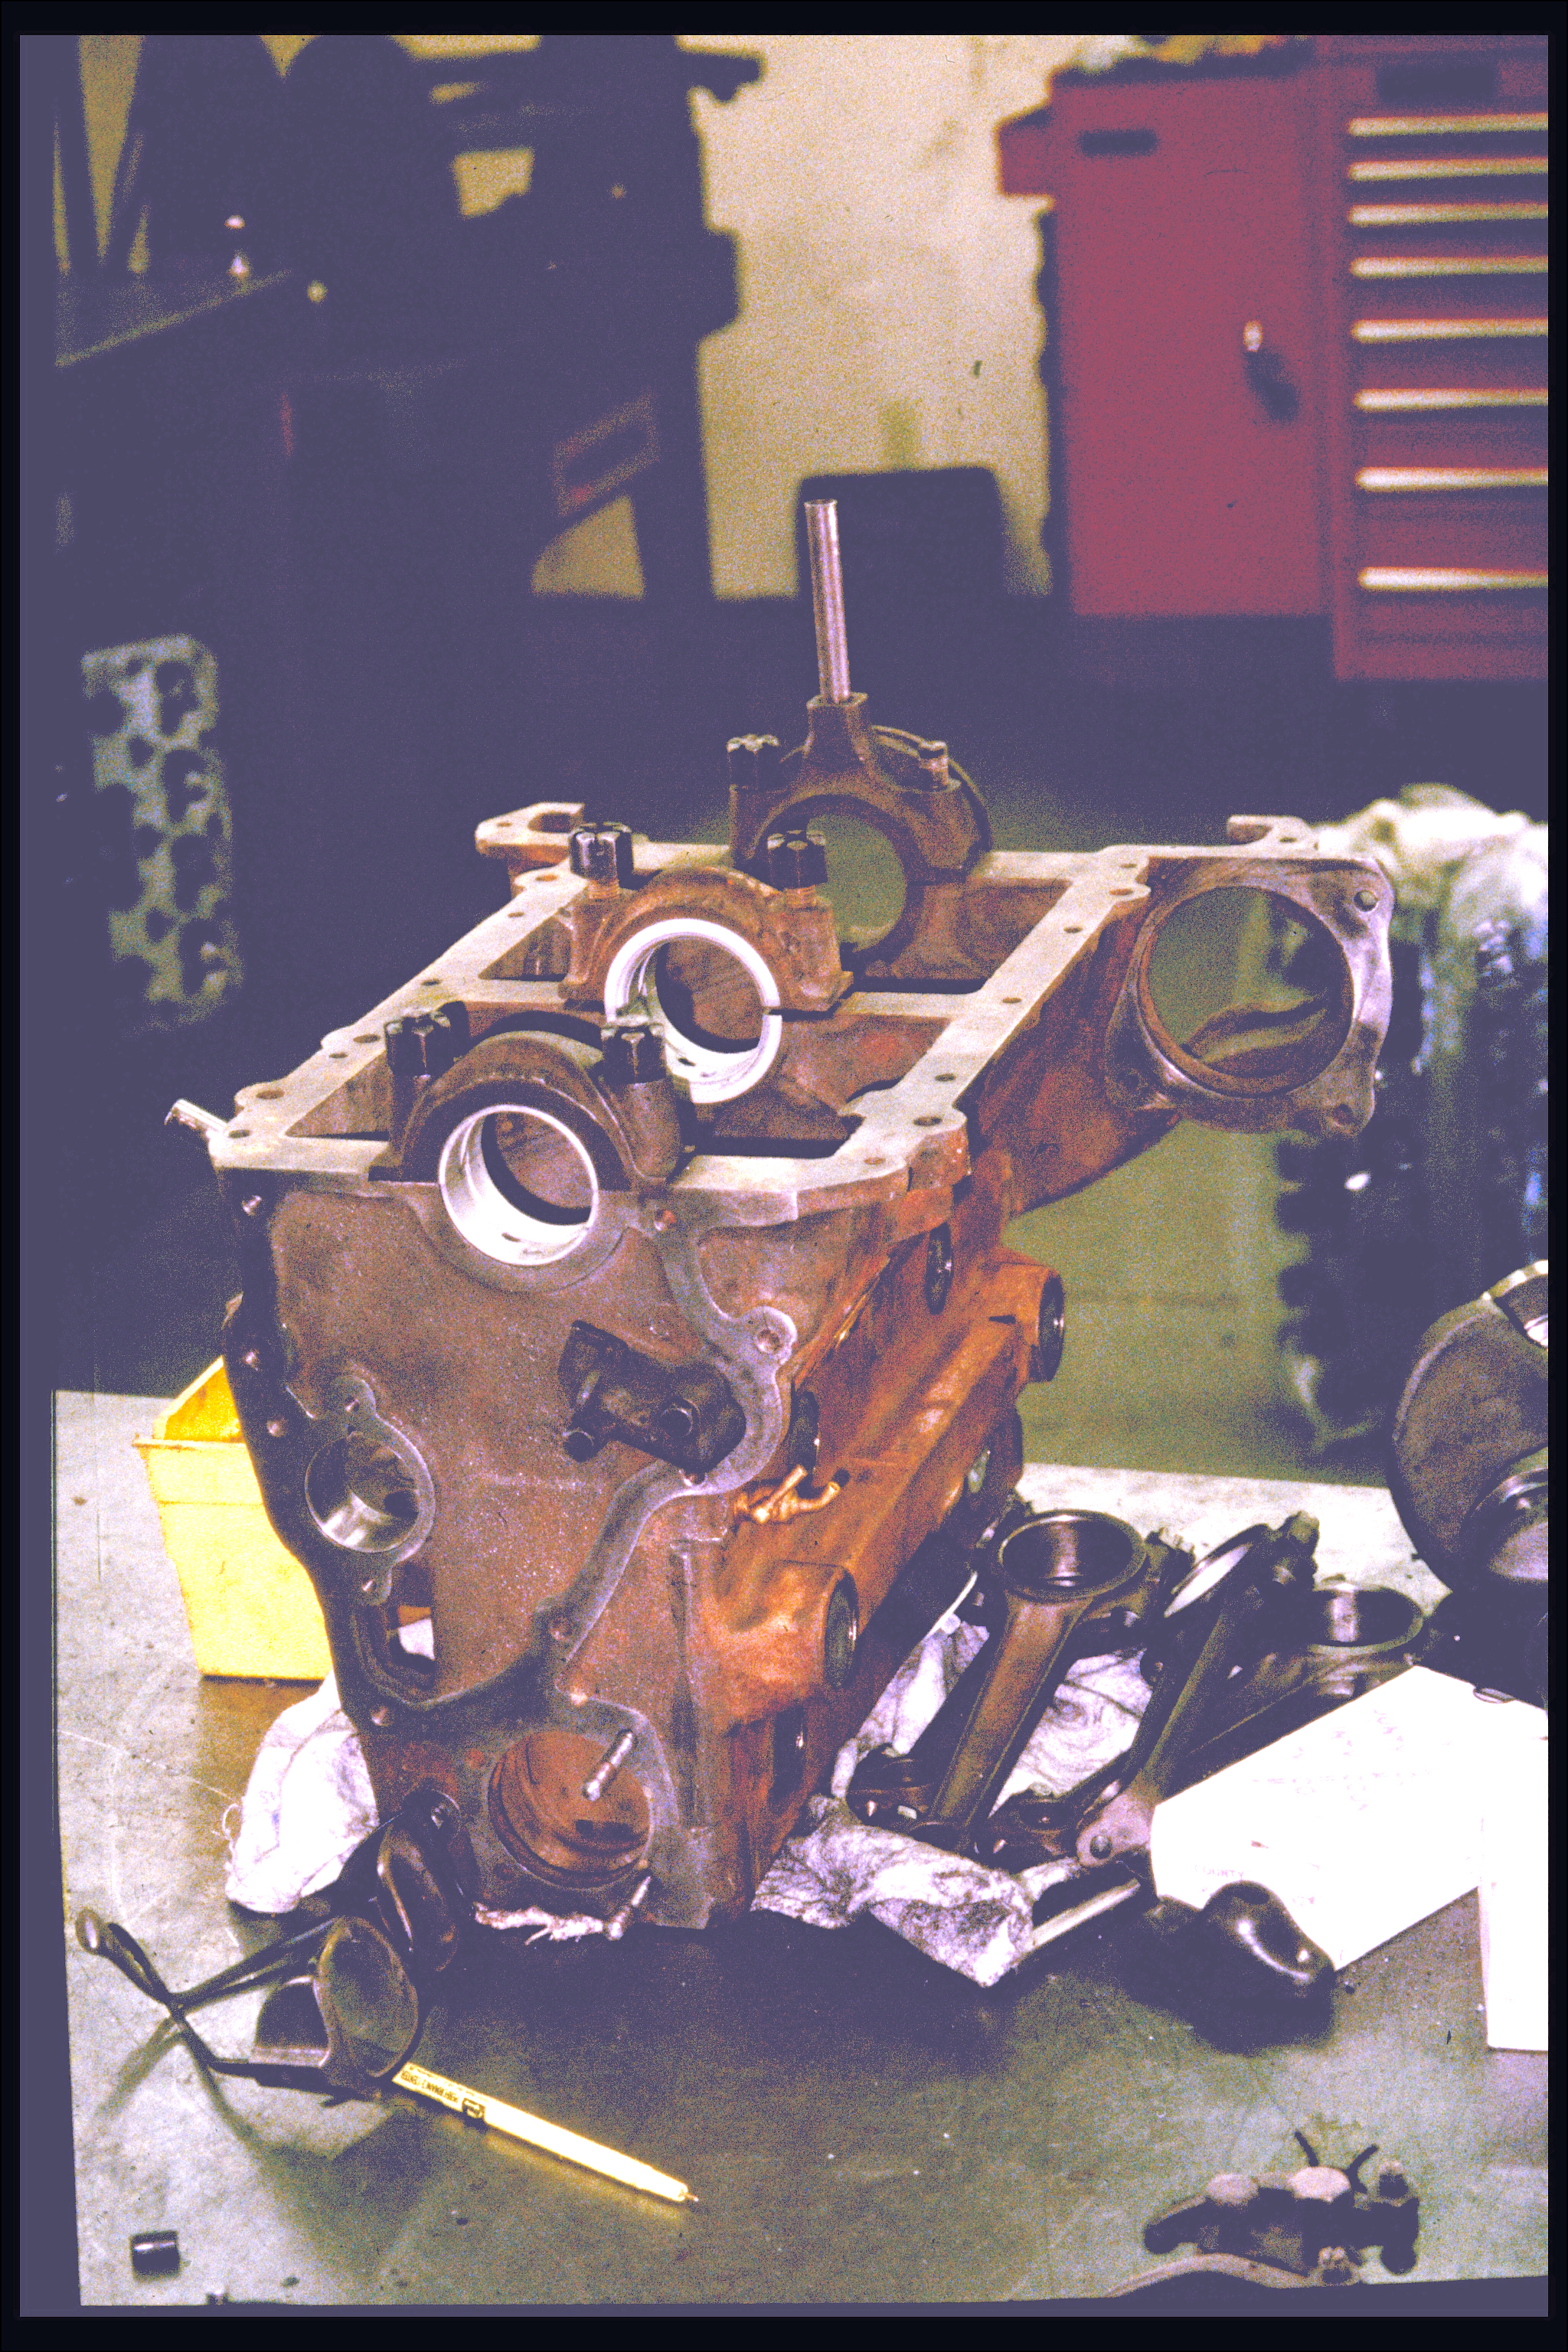 Engine block (inverted) and piston rods